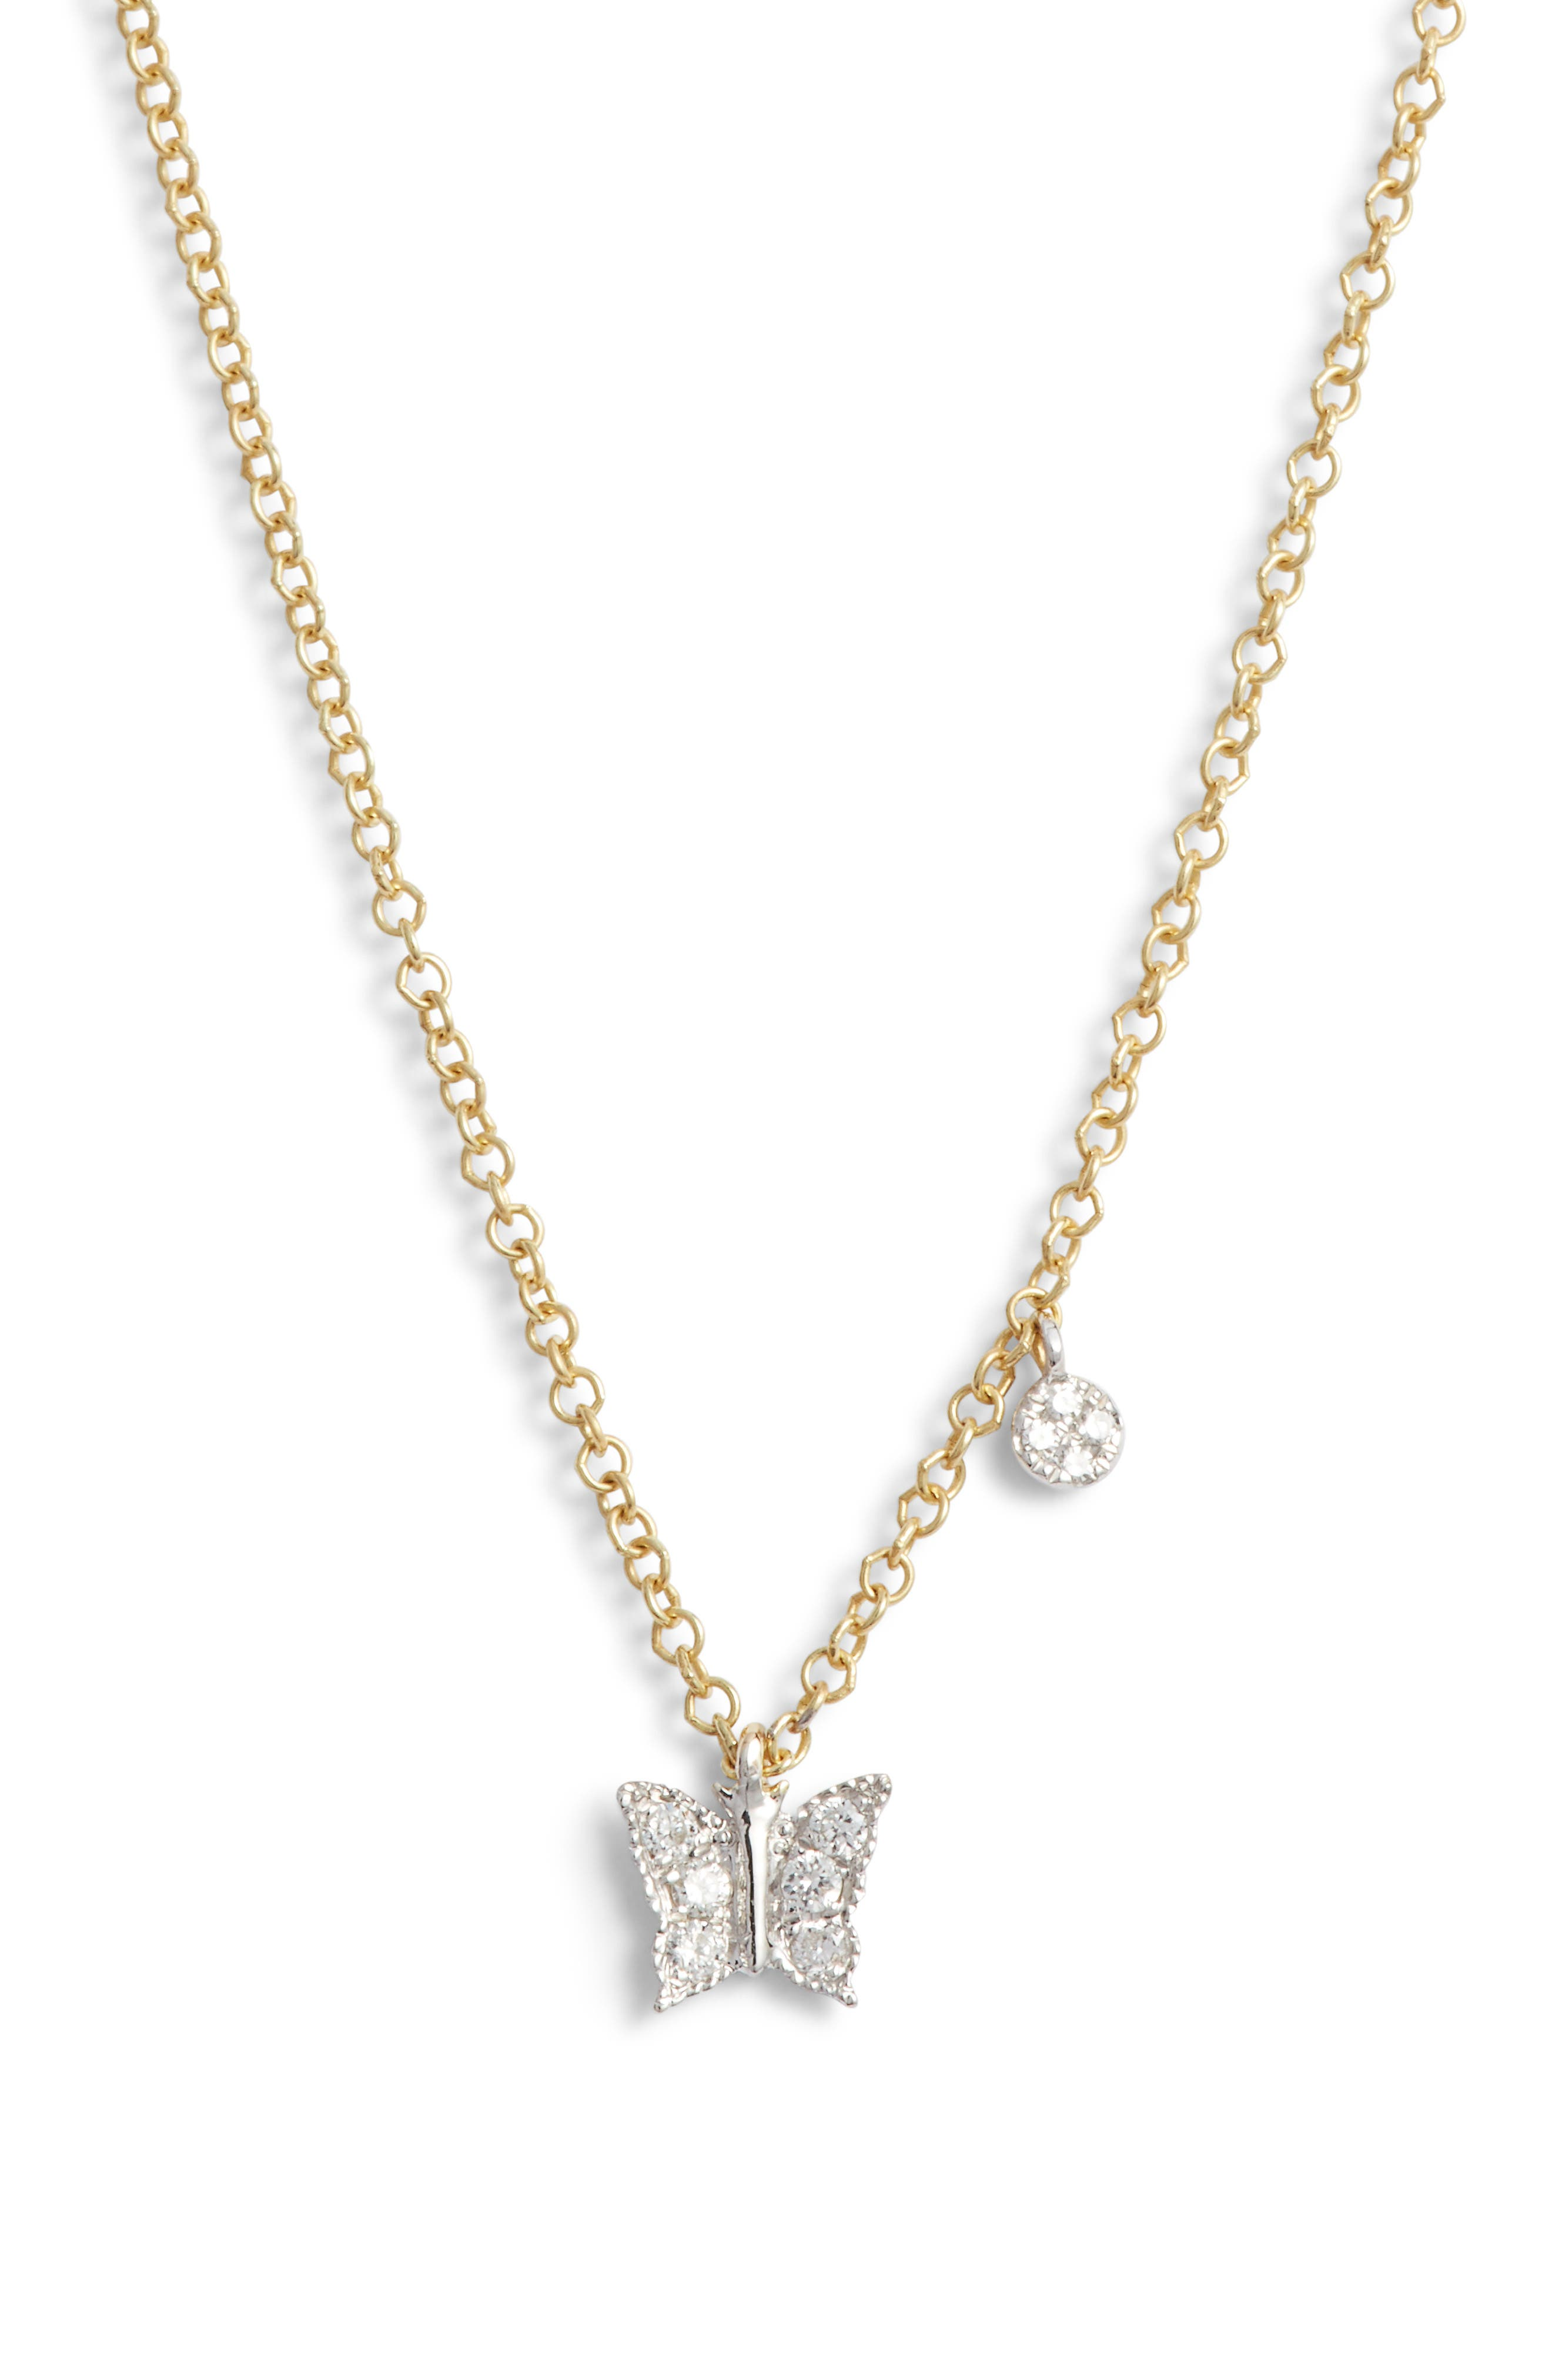 MEIRA T Diamond Butterfly Pendant Necklace in Gold